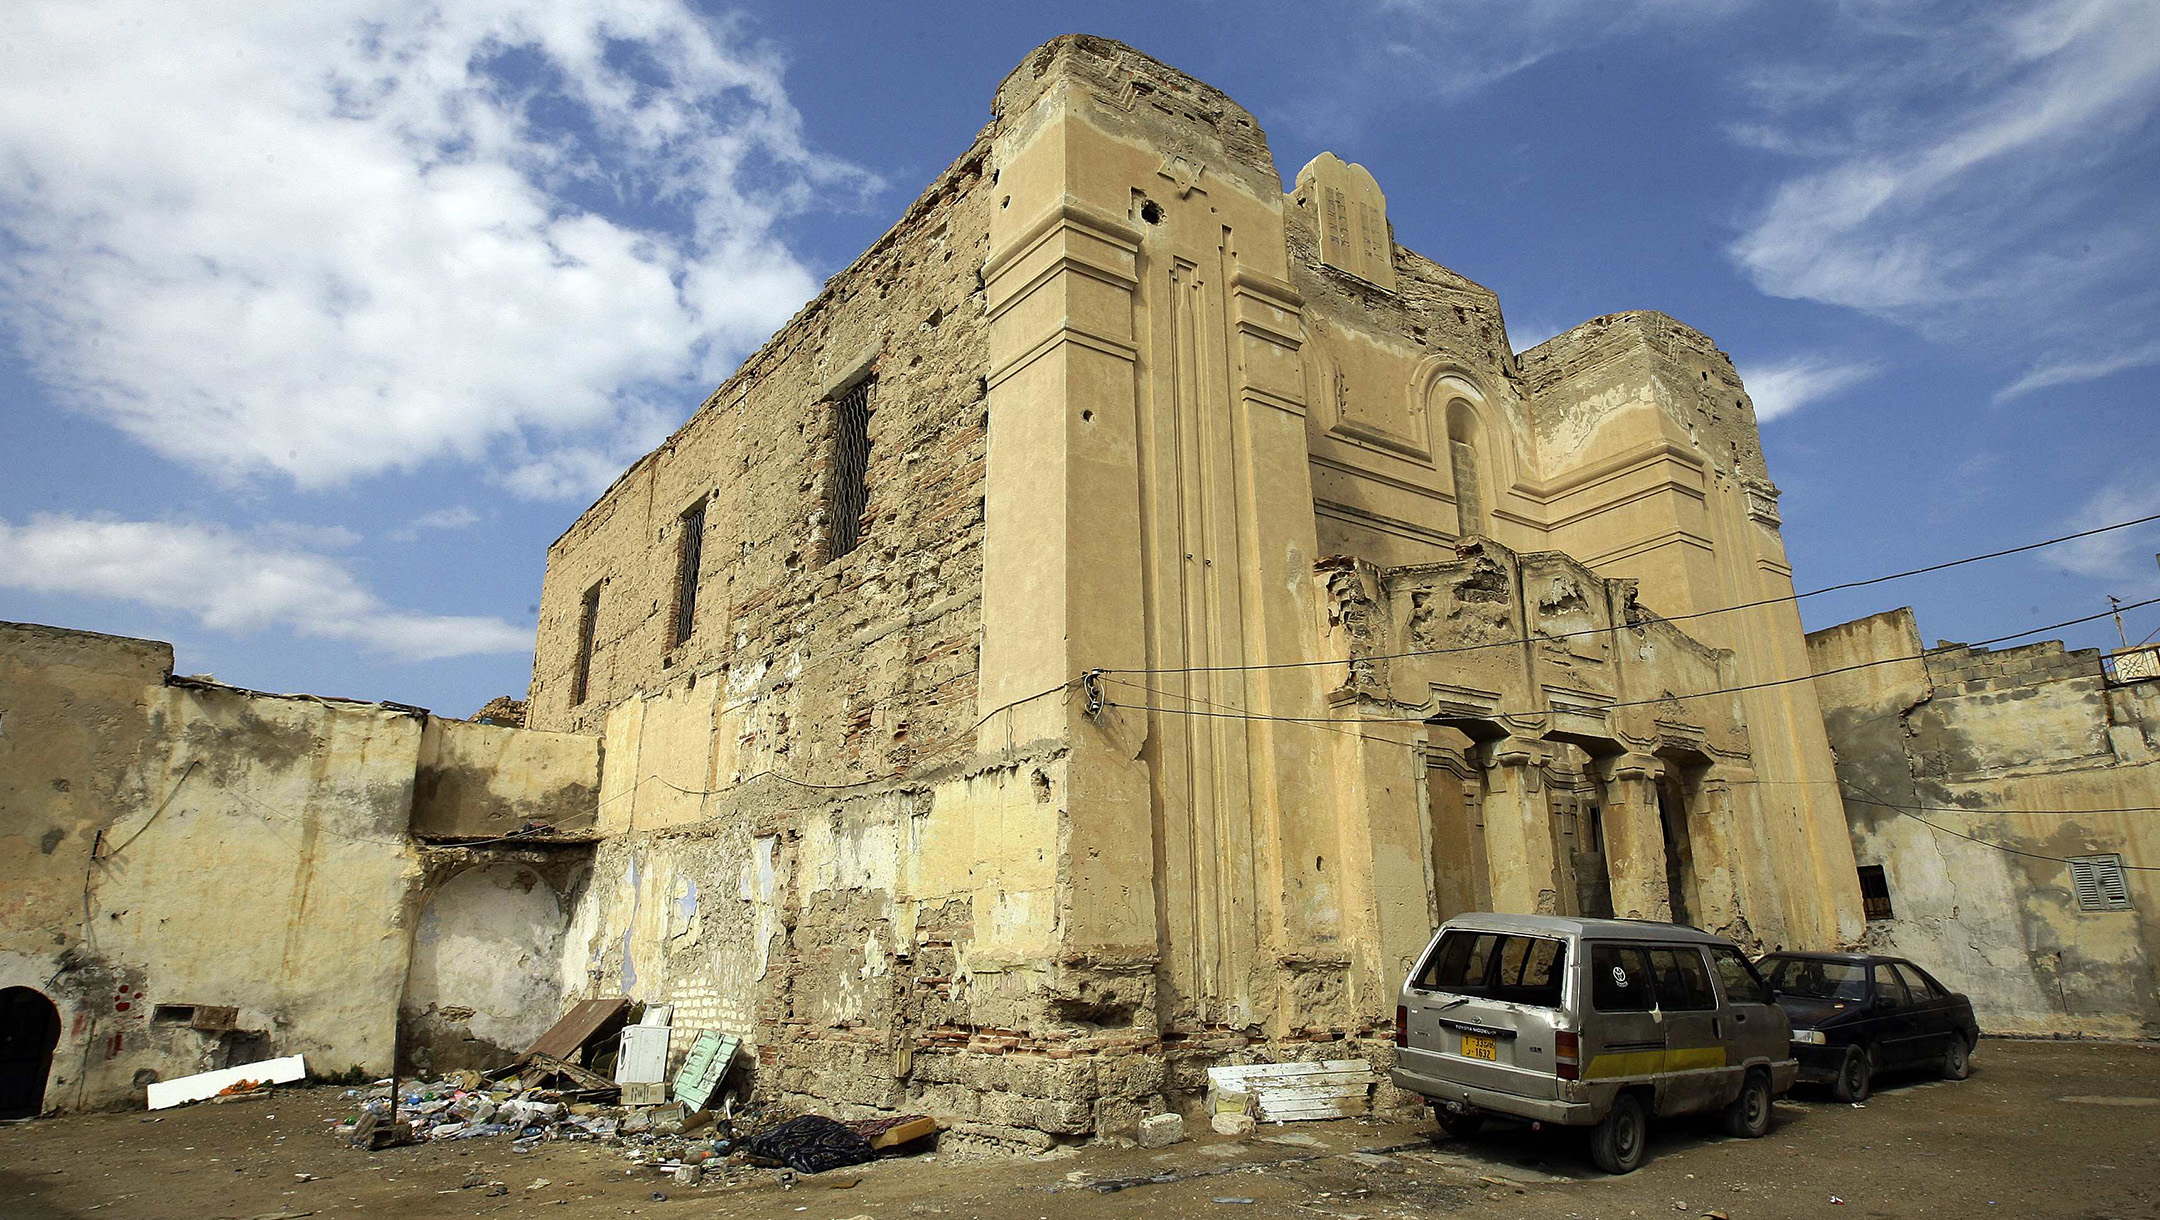 Ancient synagogue in Libya being turned into Islamic center, Jewish group says